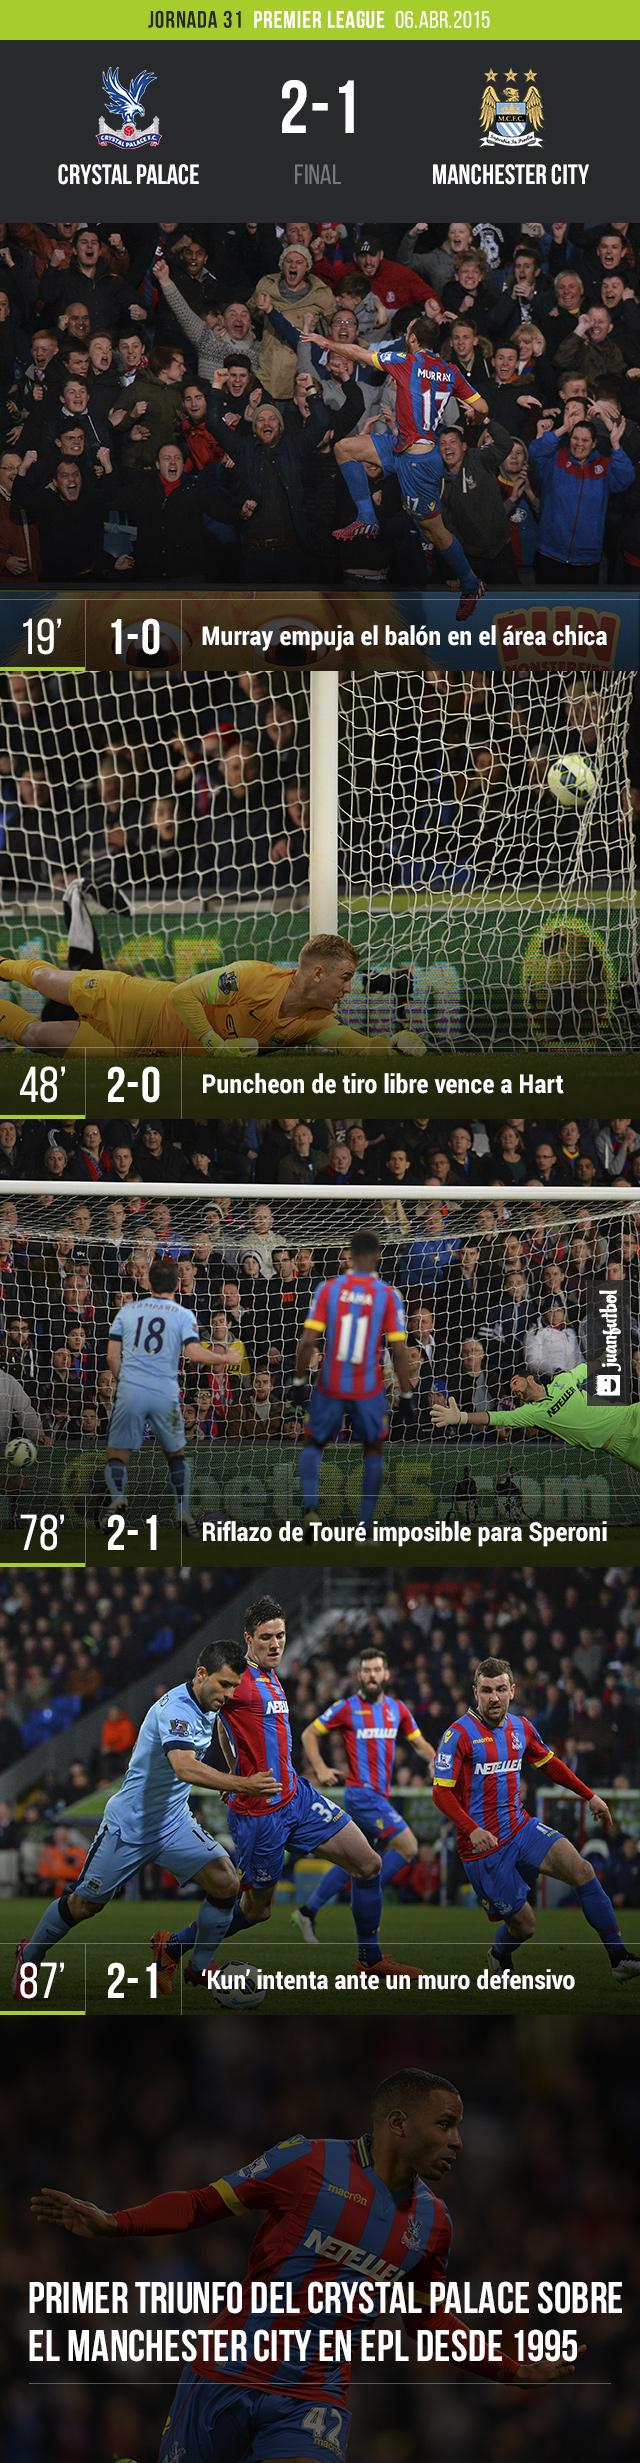 Manchester City pierde de visita 2-1 frente al Crystal Palace en la Premier League